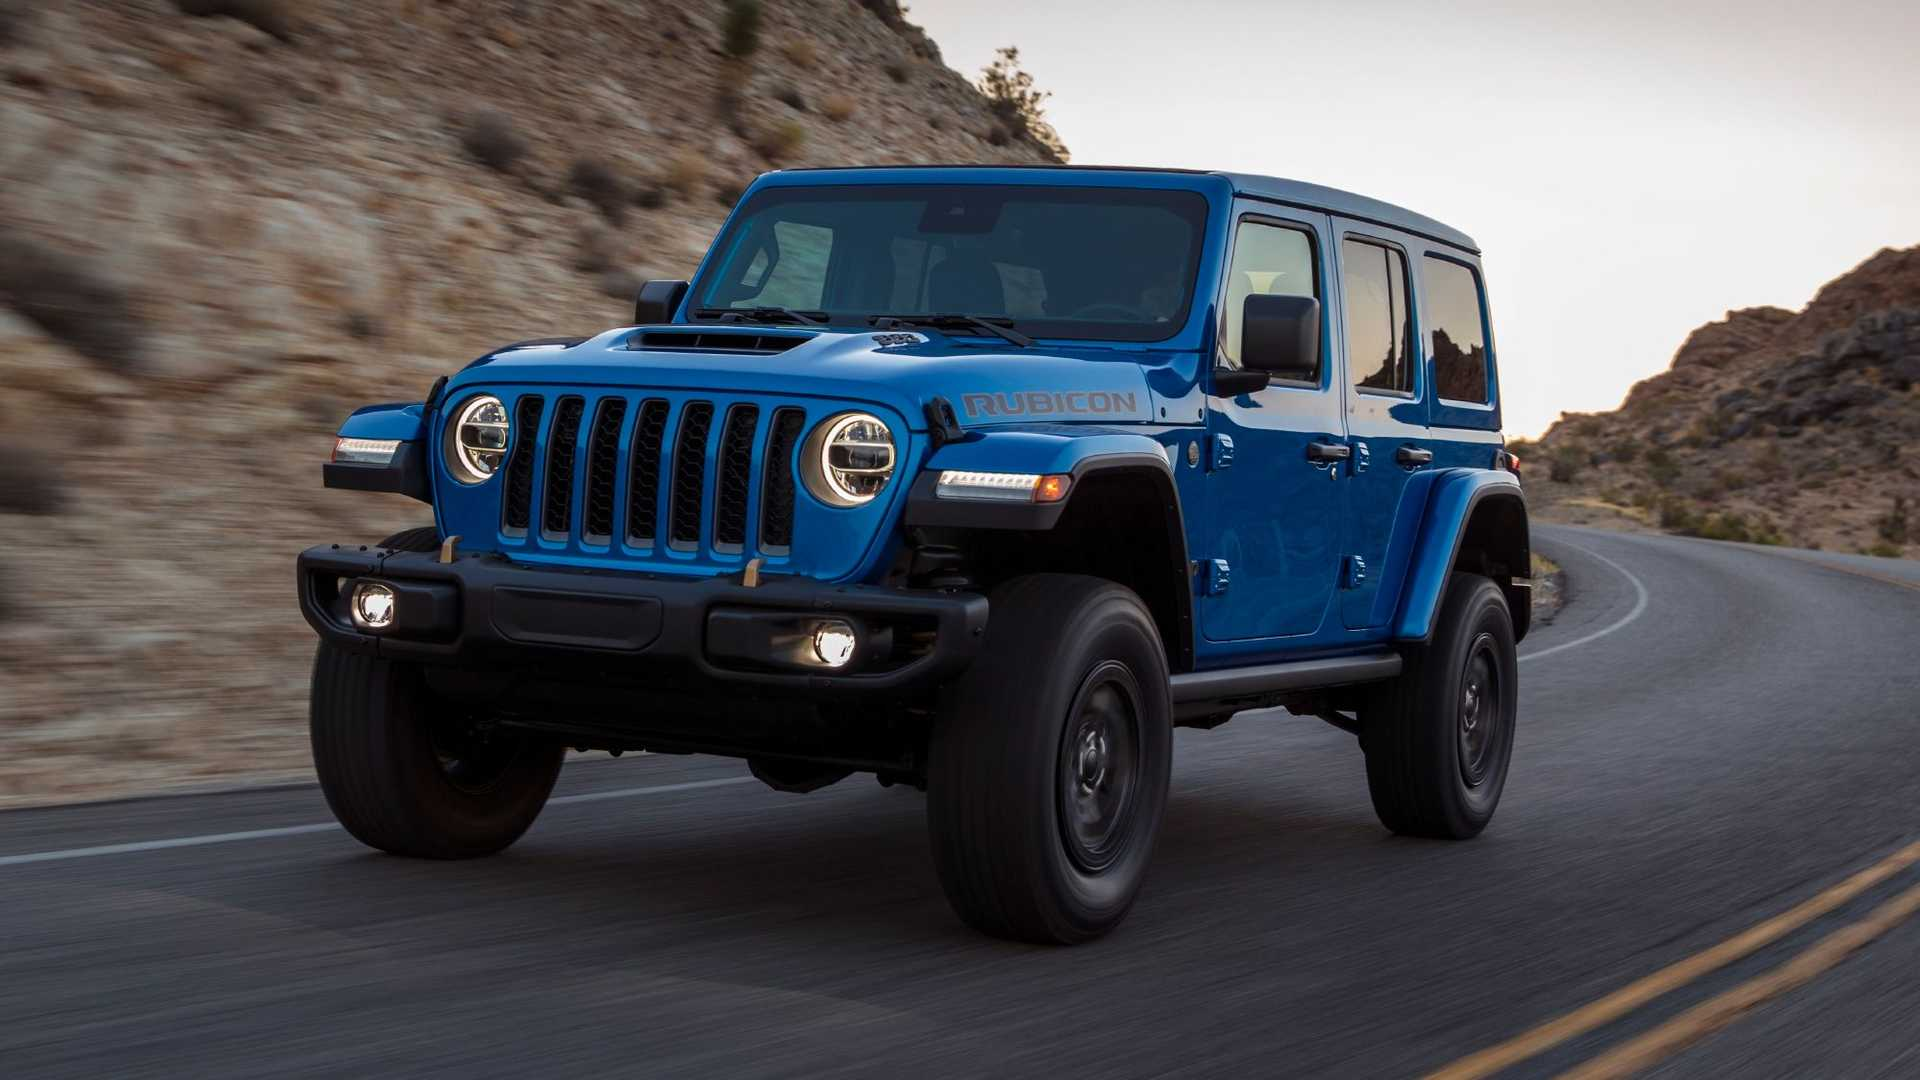 2021-jeep-wrangler-rubicon-392-front-view-3